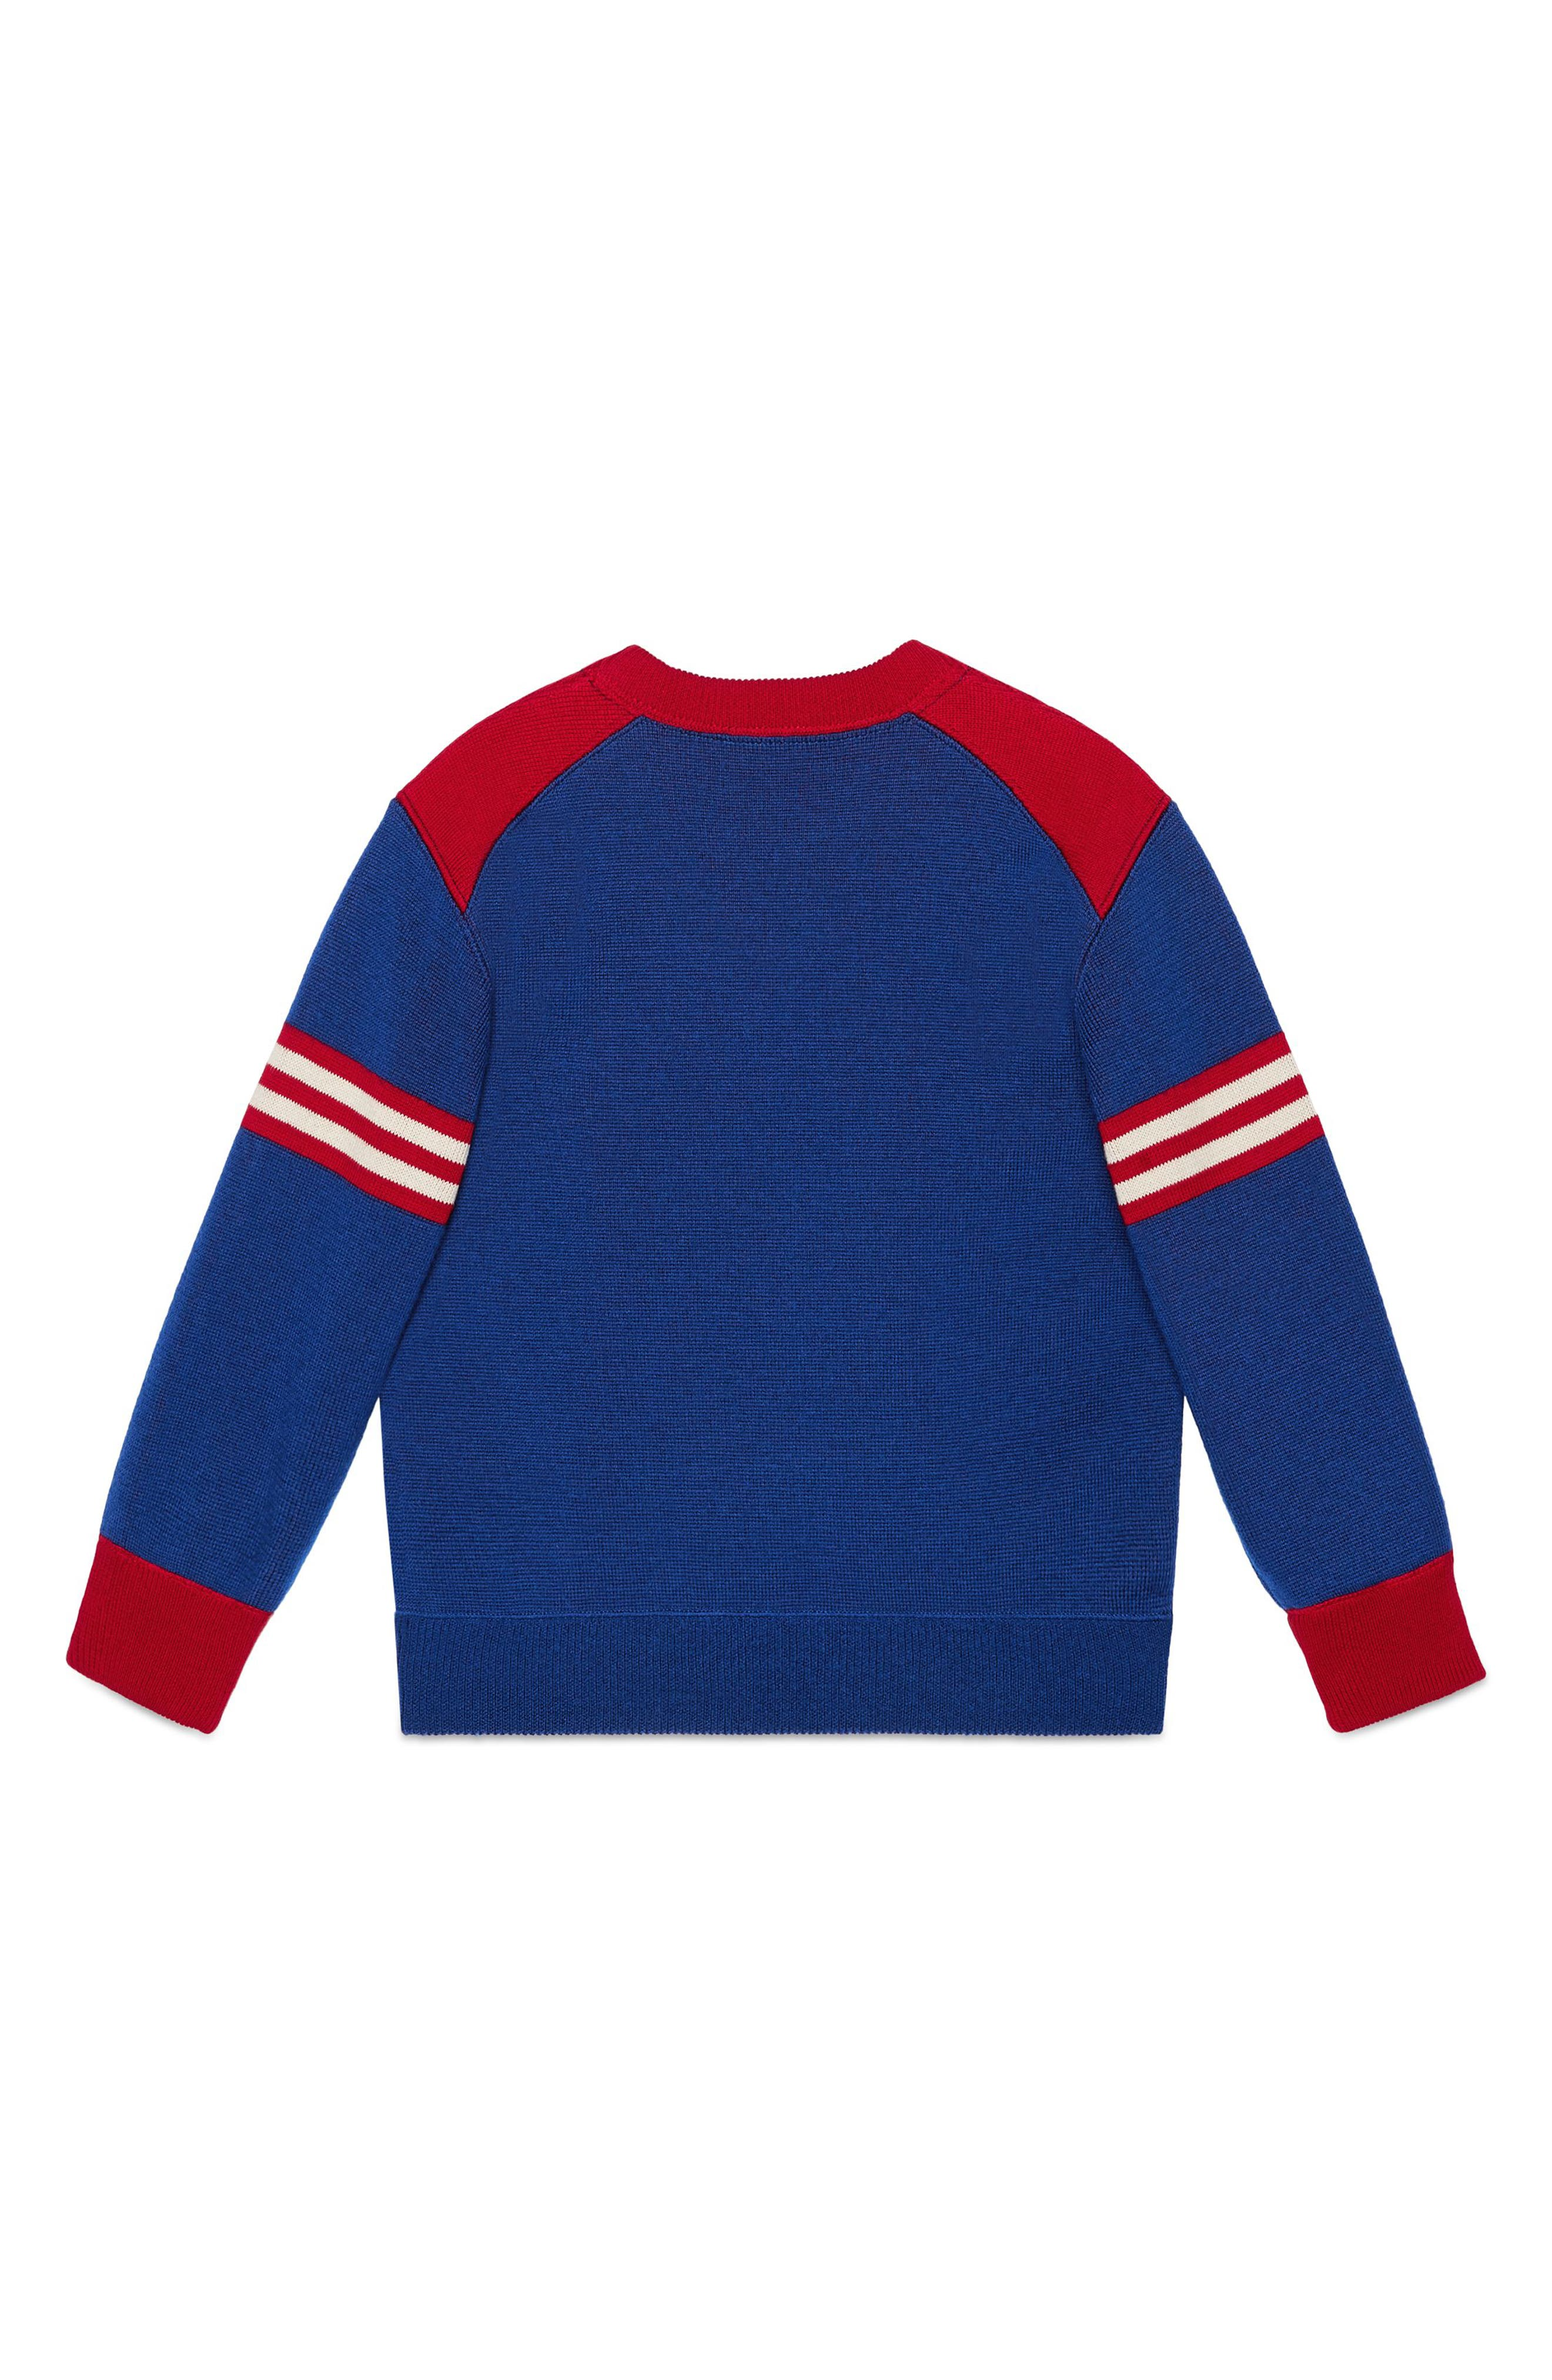 Embroidered Sweater,                             Alternate thumbnail 2, color,                             BLUE MULTI